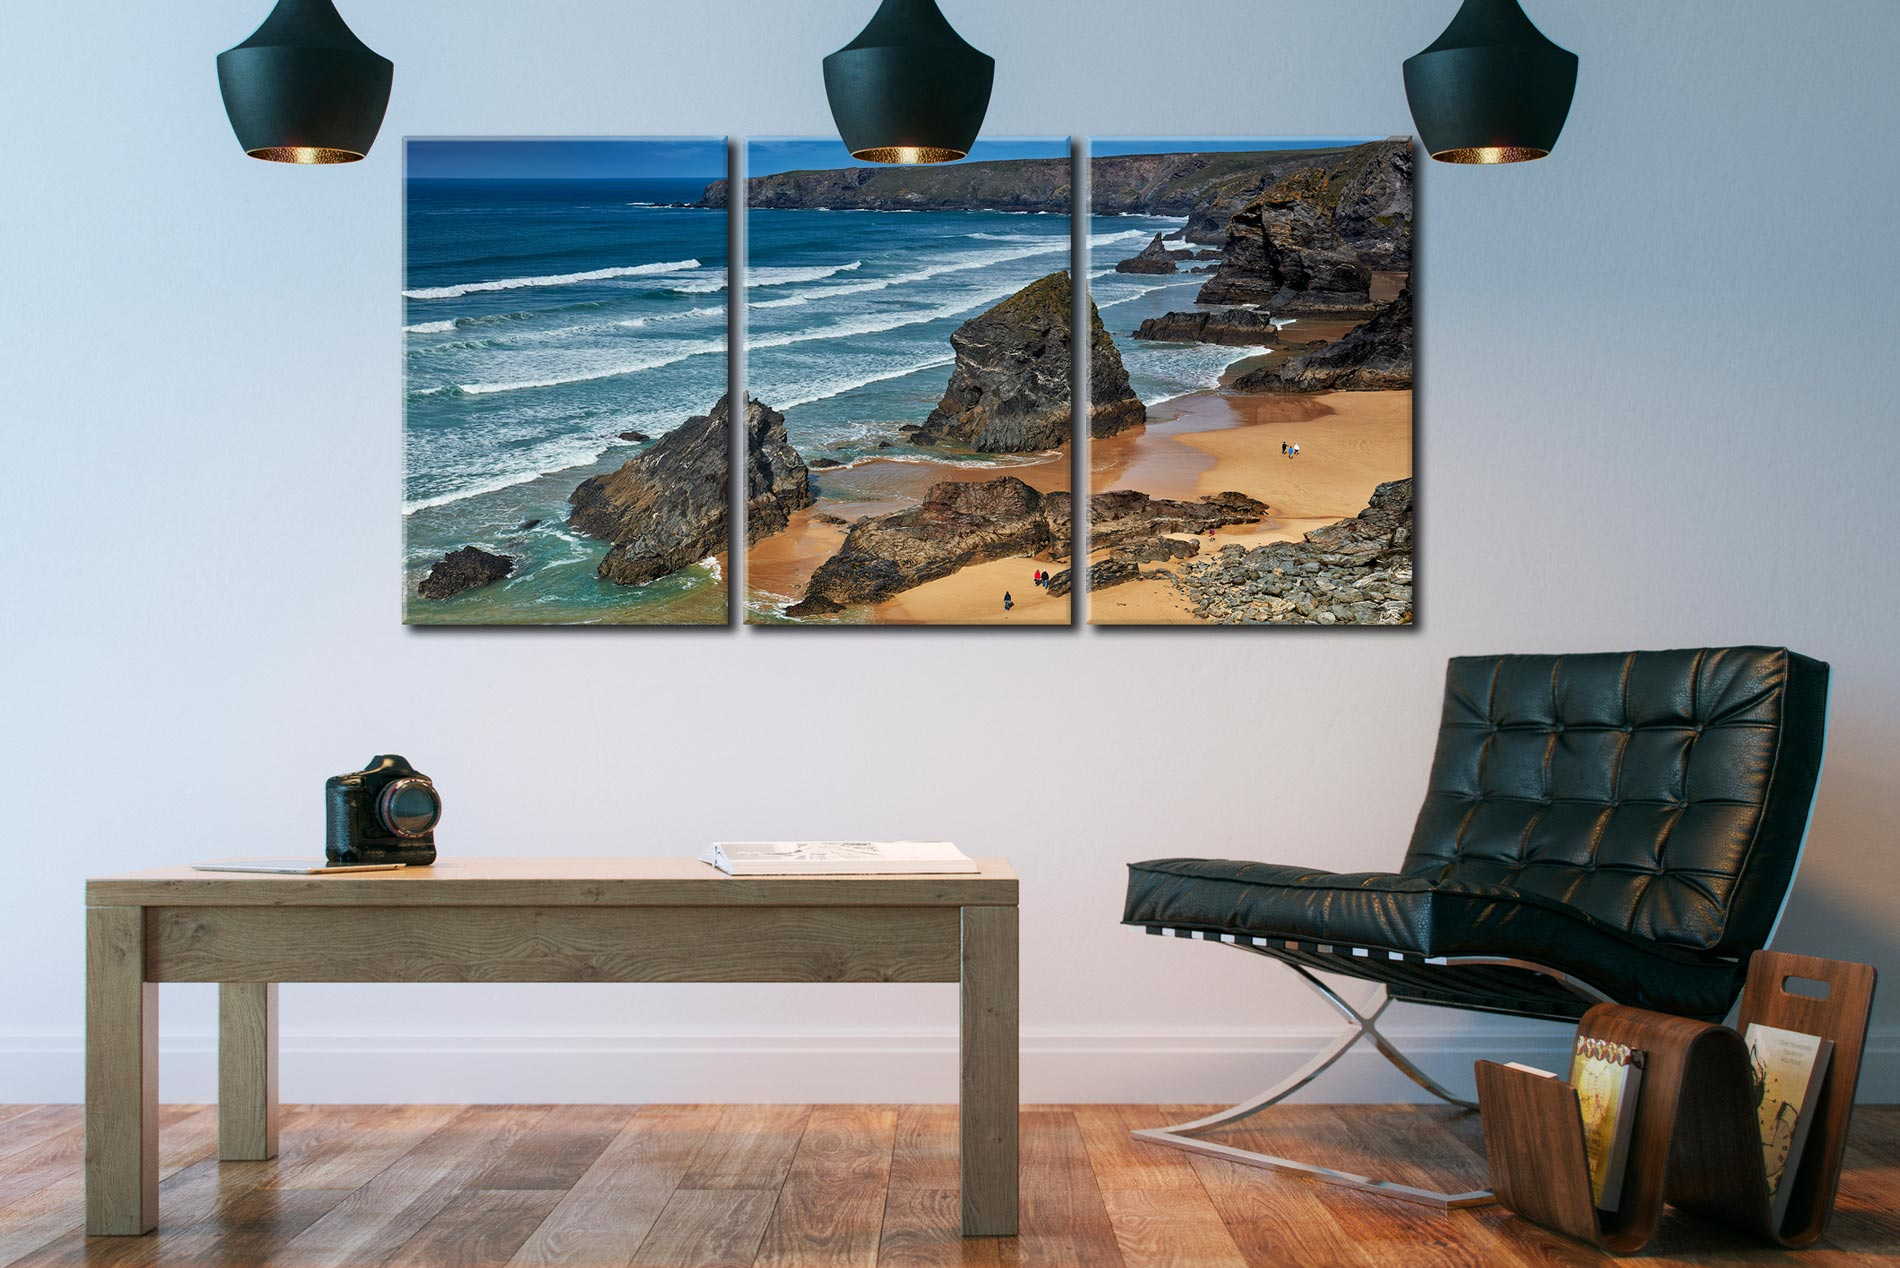 Bedruthan Steps Beach Rocks - 3 Panel Canvas on Wall